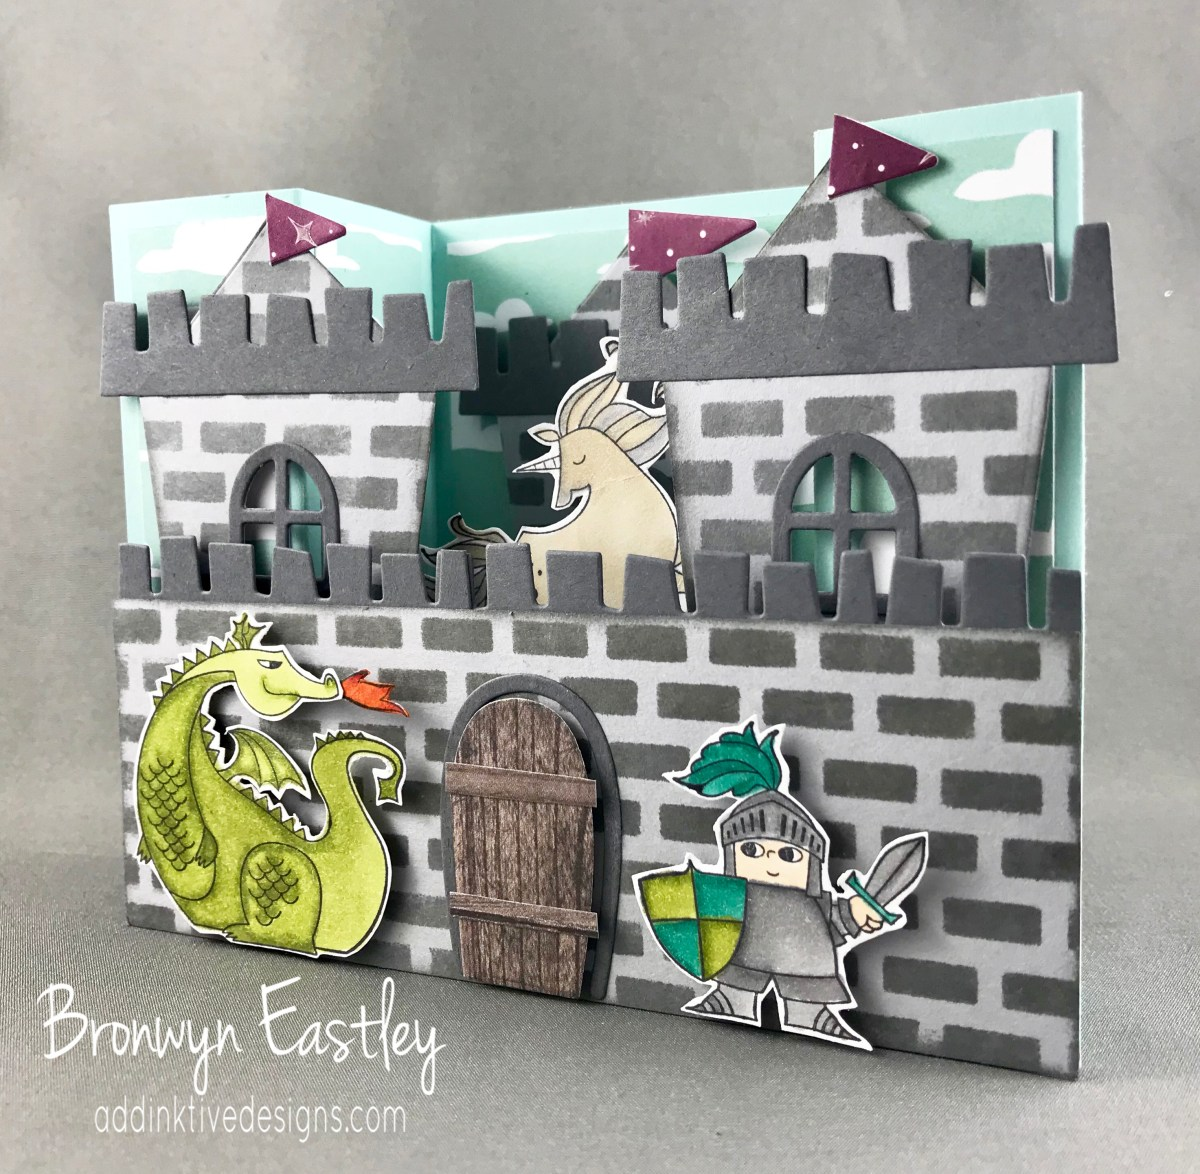 Display Stamper Blog Hop 04 - Castle Bridge Fold